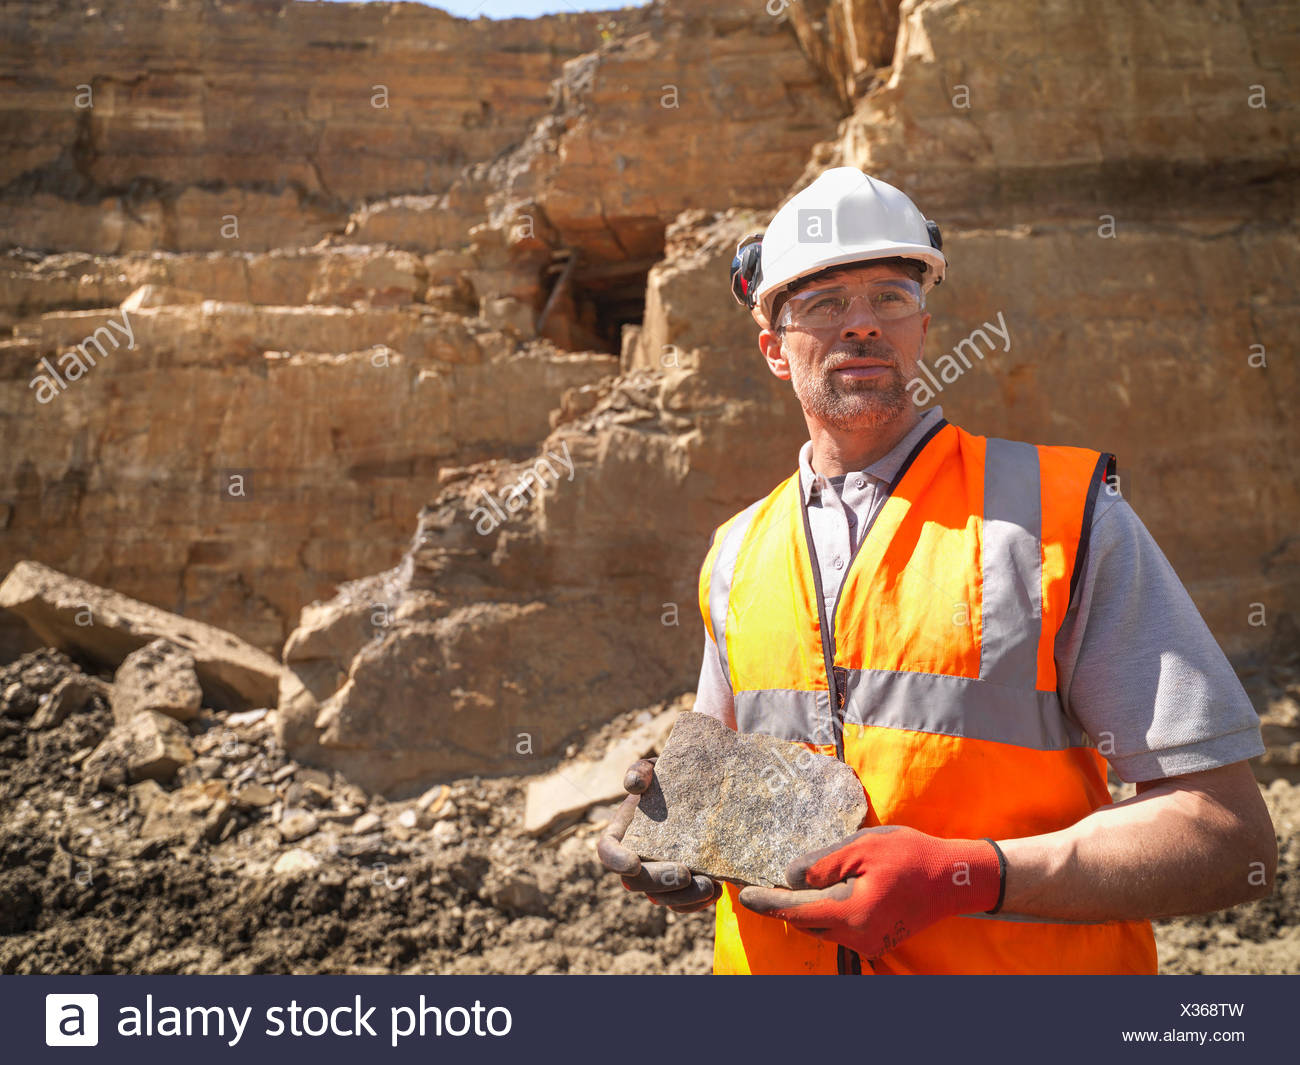 Quarry worker inspecting stone in quarry, looking away - Stock Image